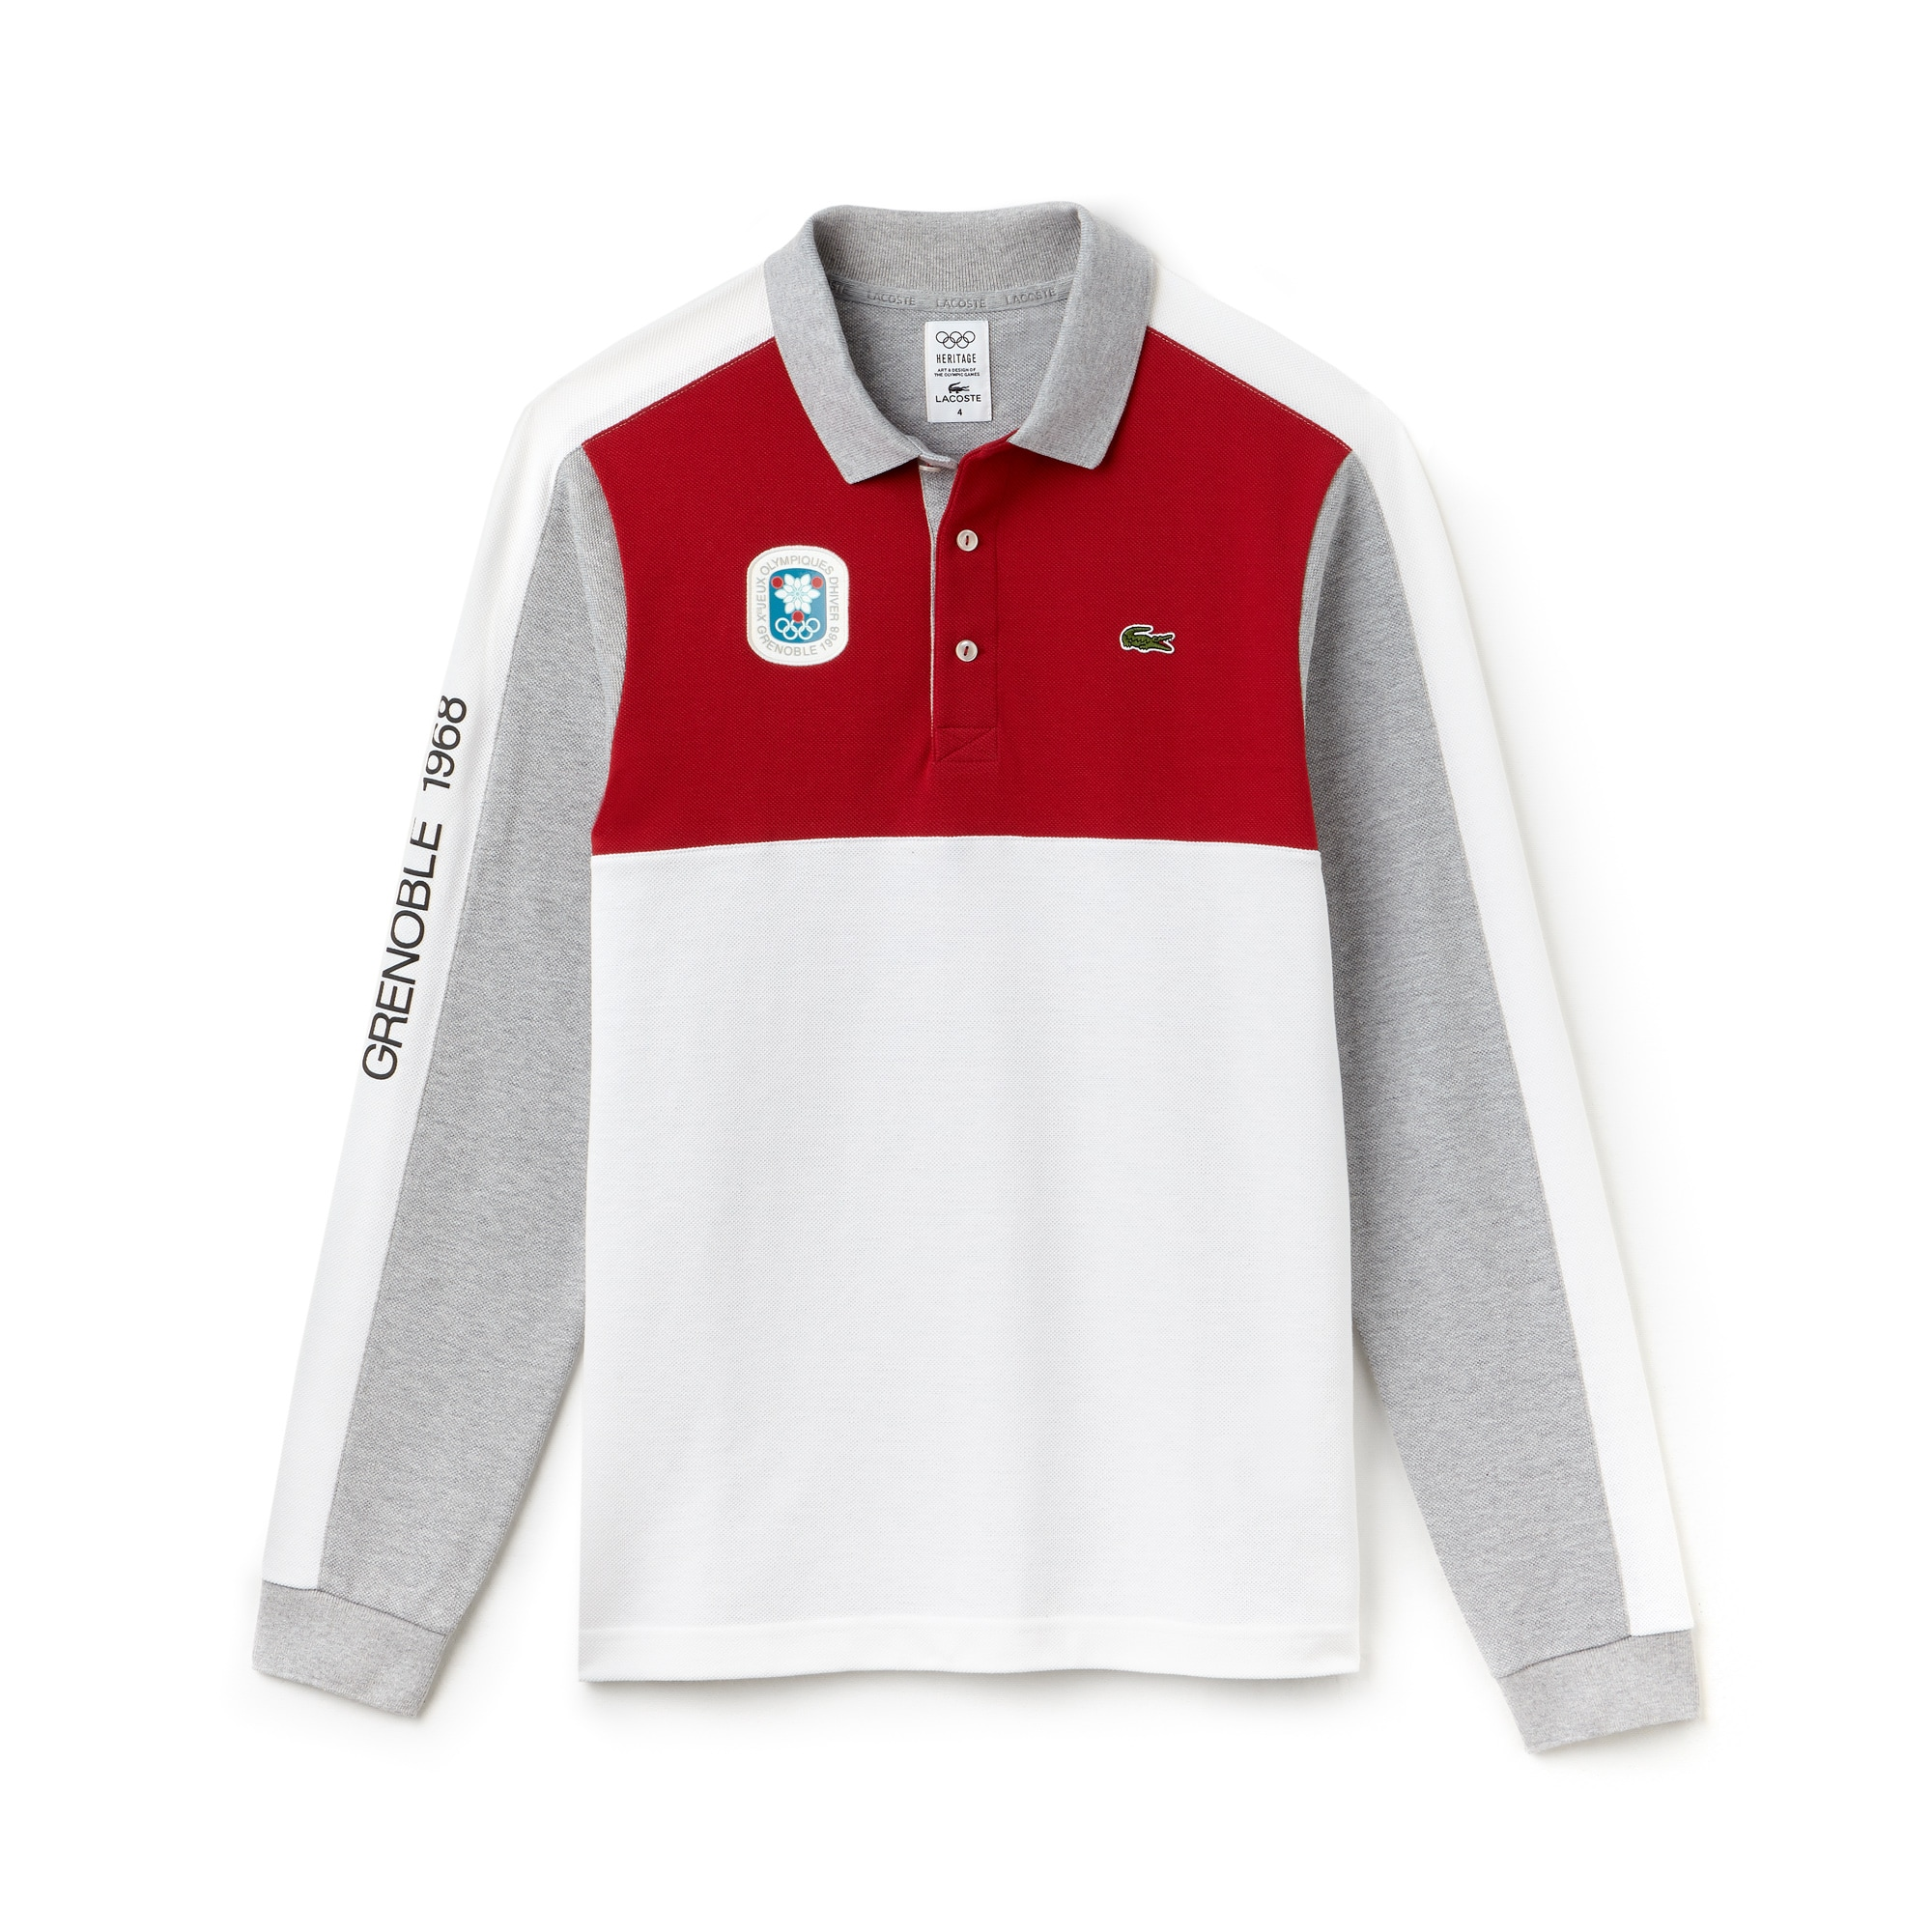 Olympic Heritage Collection by Lacoste Colorblock Polo